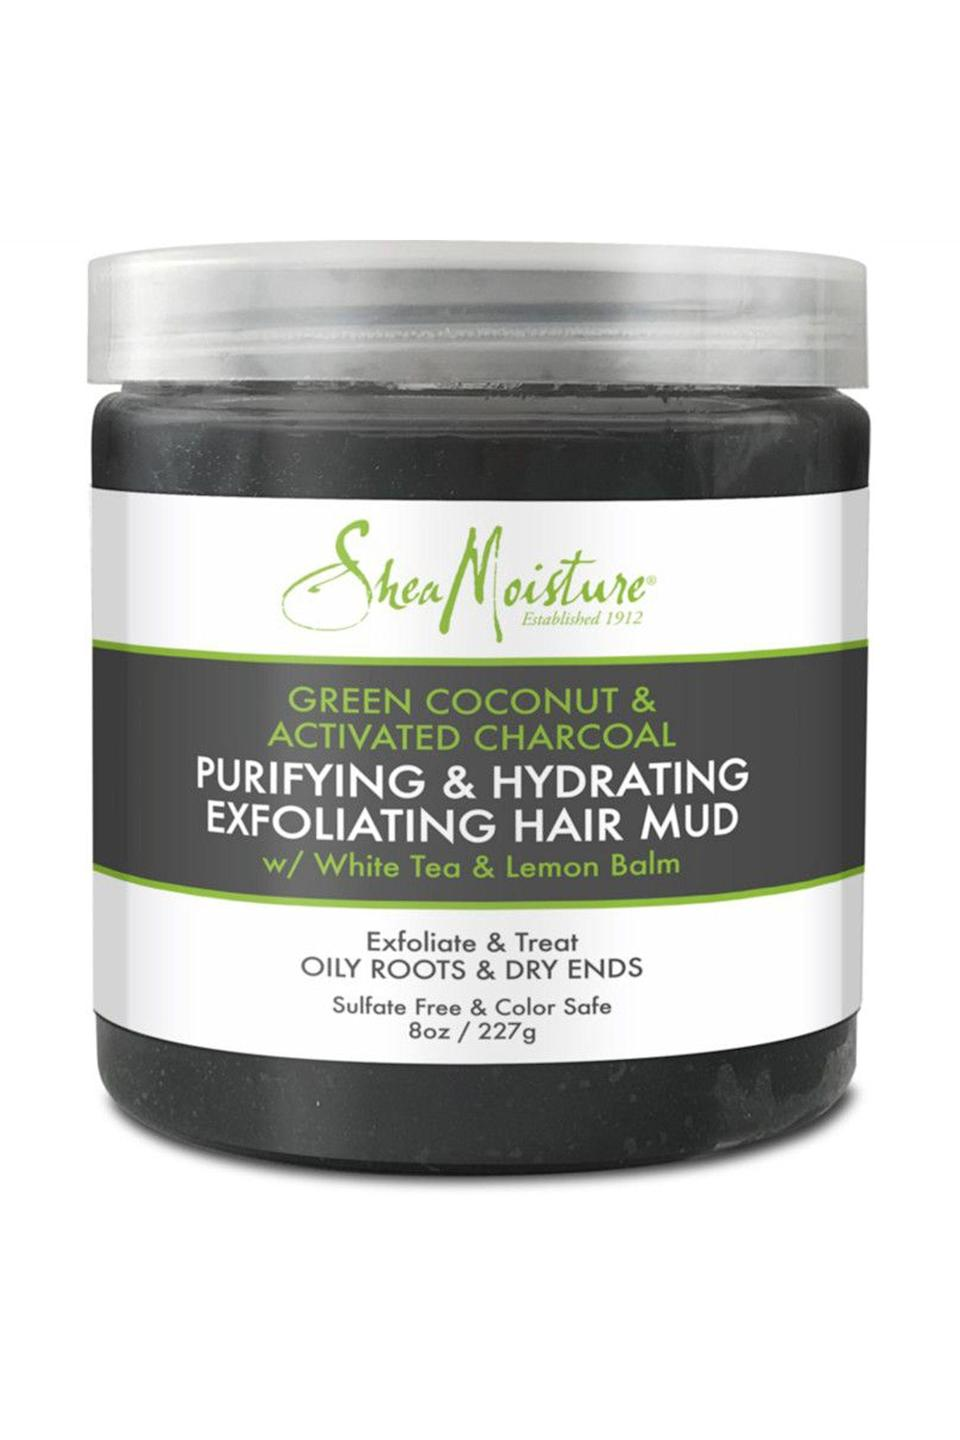 """<p><strong>SheaMoisture</strong></p><p>ulta.com</p><p><strong>$100.00</strong></p><p><a href=""""https://go.redirectingat.com?id=74968X1596630&url=https%3A%2F%2Fwww.ulta.com%2Fgreen-coconut-activated-charcoal-exfoliating-hair-mud%3FproductId%3DxlsImpprod18671021&sref=https%3A%2F%2Fwww.cosmopolitan.com%2Fstyle-beauty%2Fbeauty%2Fg26114920%2Fbest-scalp-scrubs%2F"""" rel=""""nofollow noopener"""" target=""""_blank"""" data-ylk=""""slk:Shop Now"""" class=""""link rapid-noclick-resp"""">Shop Now</a></p><p>The charcoal in this scrub soaks up excess oil, while the added <strong>white tea and green coconut work to hydrate and balance out your greasy scalp. </strong>The consistency is thick, but once you work it in with your wet hands and massage it into your roots, you'll get a lather that feels almost like a <a href=""""https://www.cosmopolitan.com/style-beauty/beauty/g19827523/best-shampoo-for-oily-greasy-hair/"""" rel=""""nofollow noopener"""" target=""""_blank"""" data-ylk=""""slk:shampoo"""" class=""""link rapid-noclick-resp"""">shampoo</a>.</p>"""